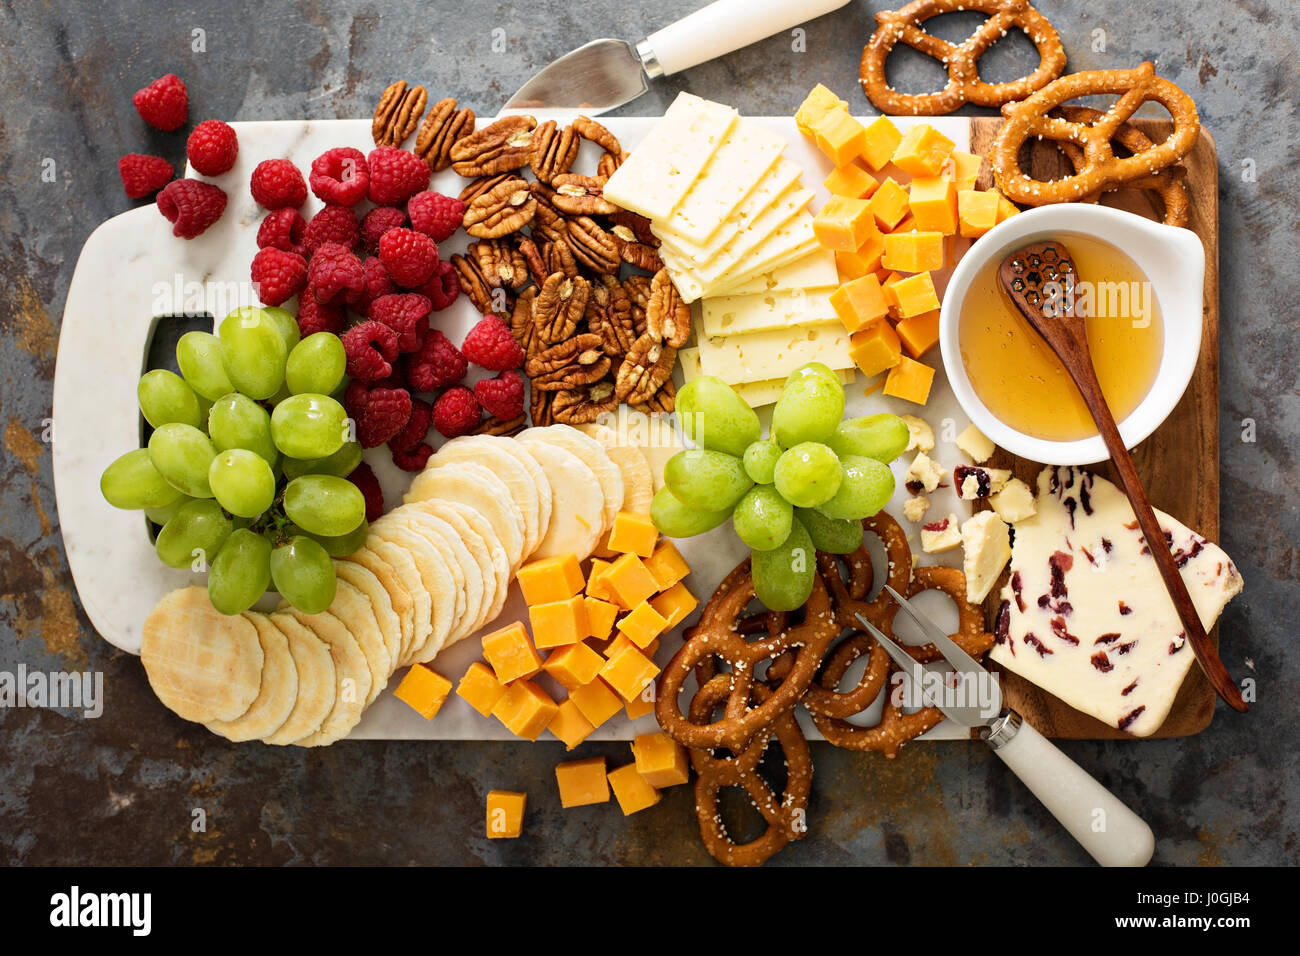 Cheese and snacks platter with honey and fresh fruit - Stock Image